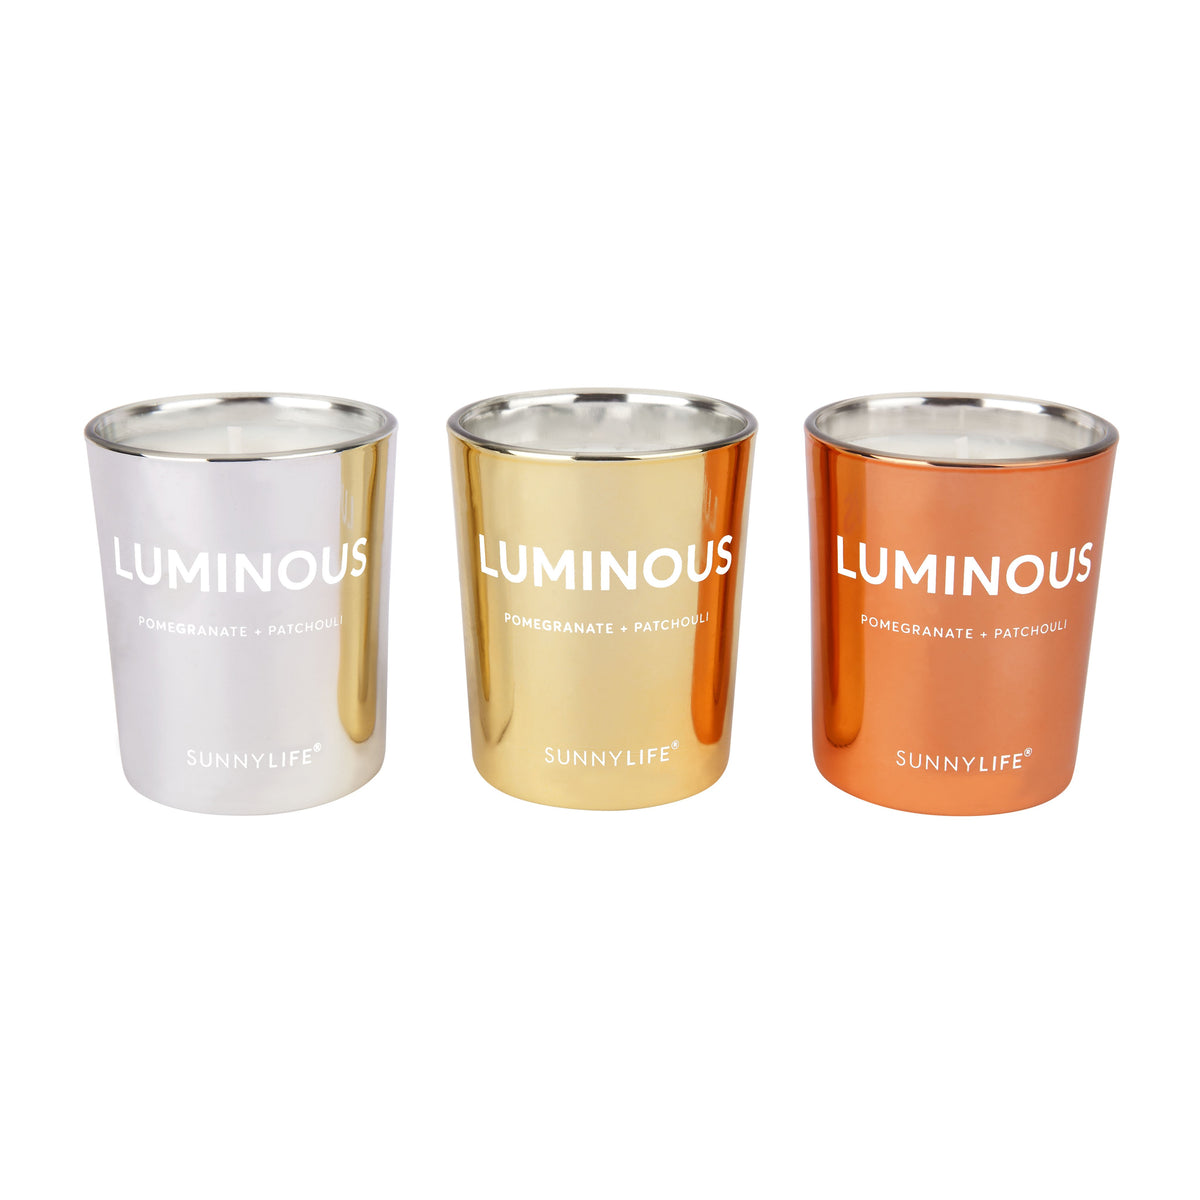 Sunnylife | Scented Candle Pack | Luminous